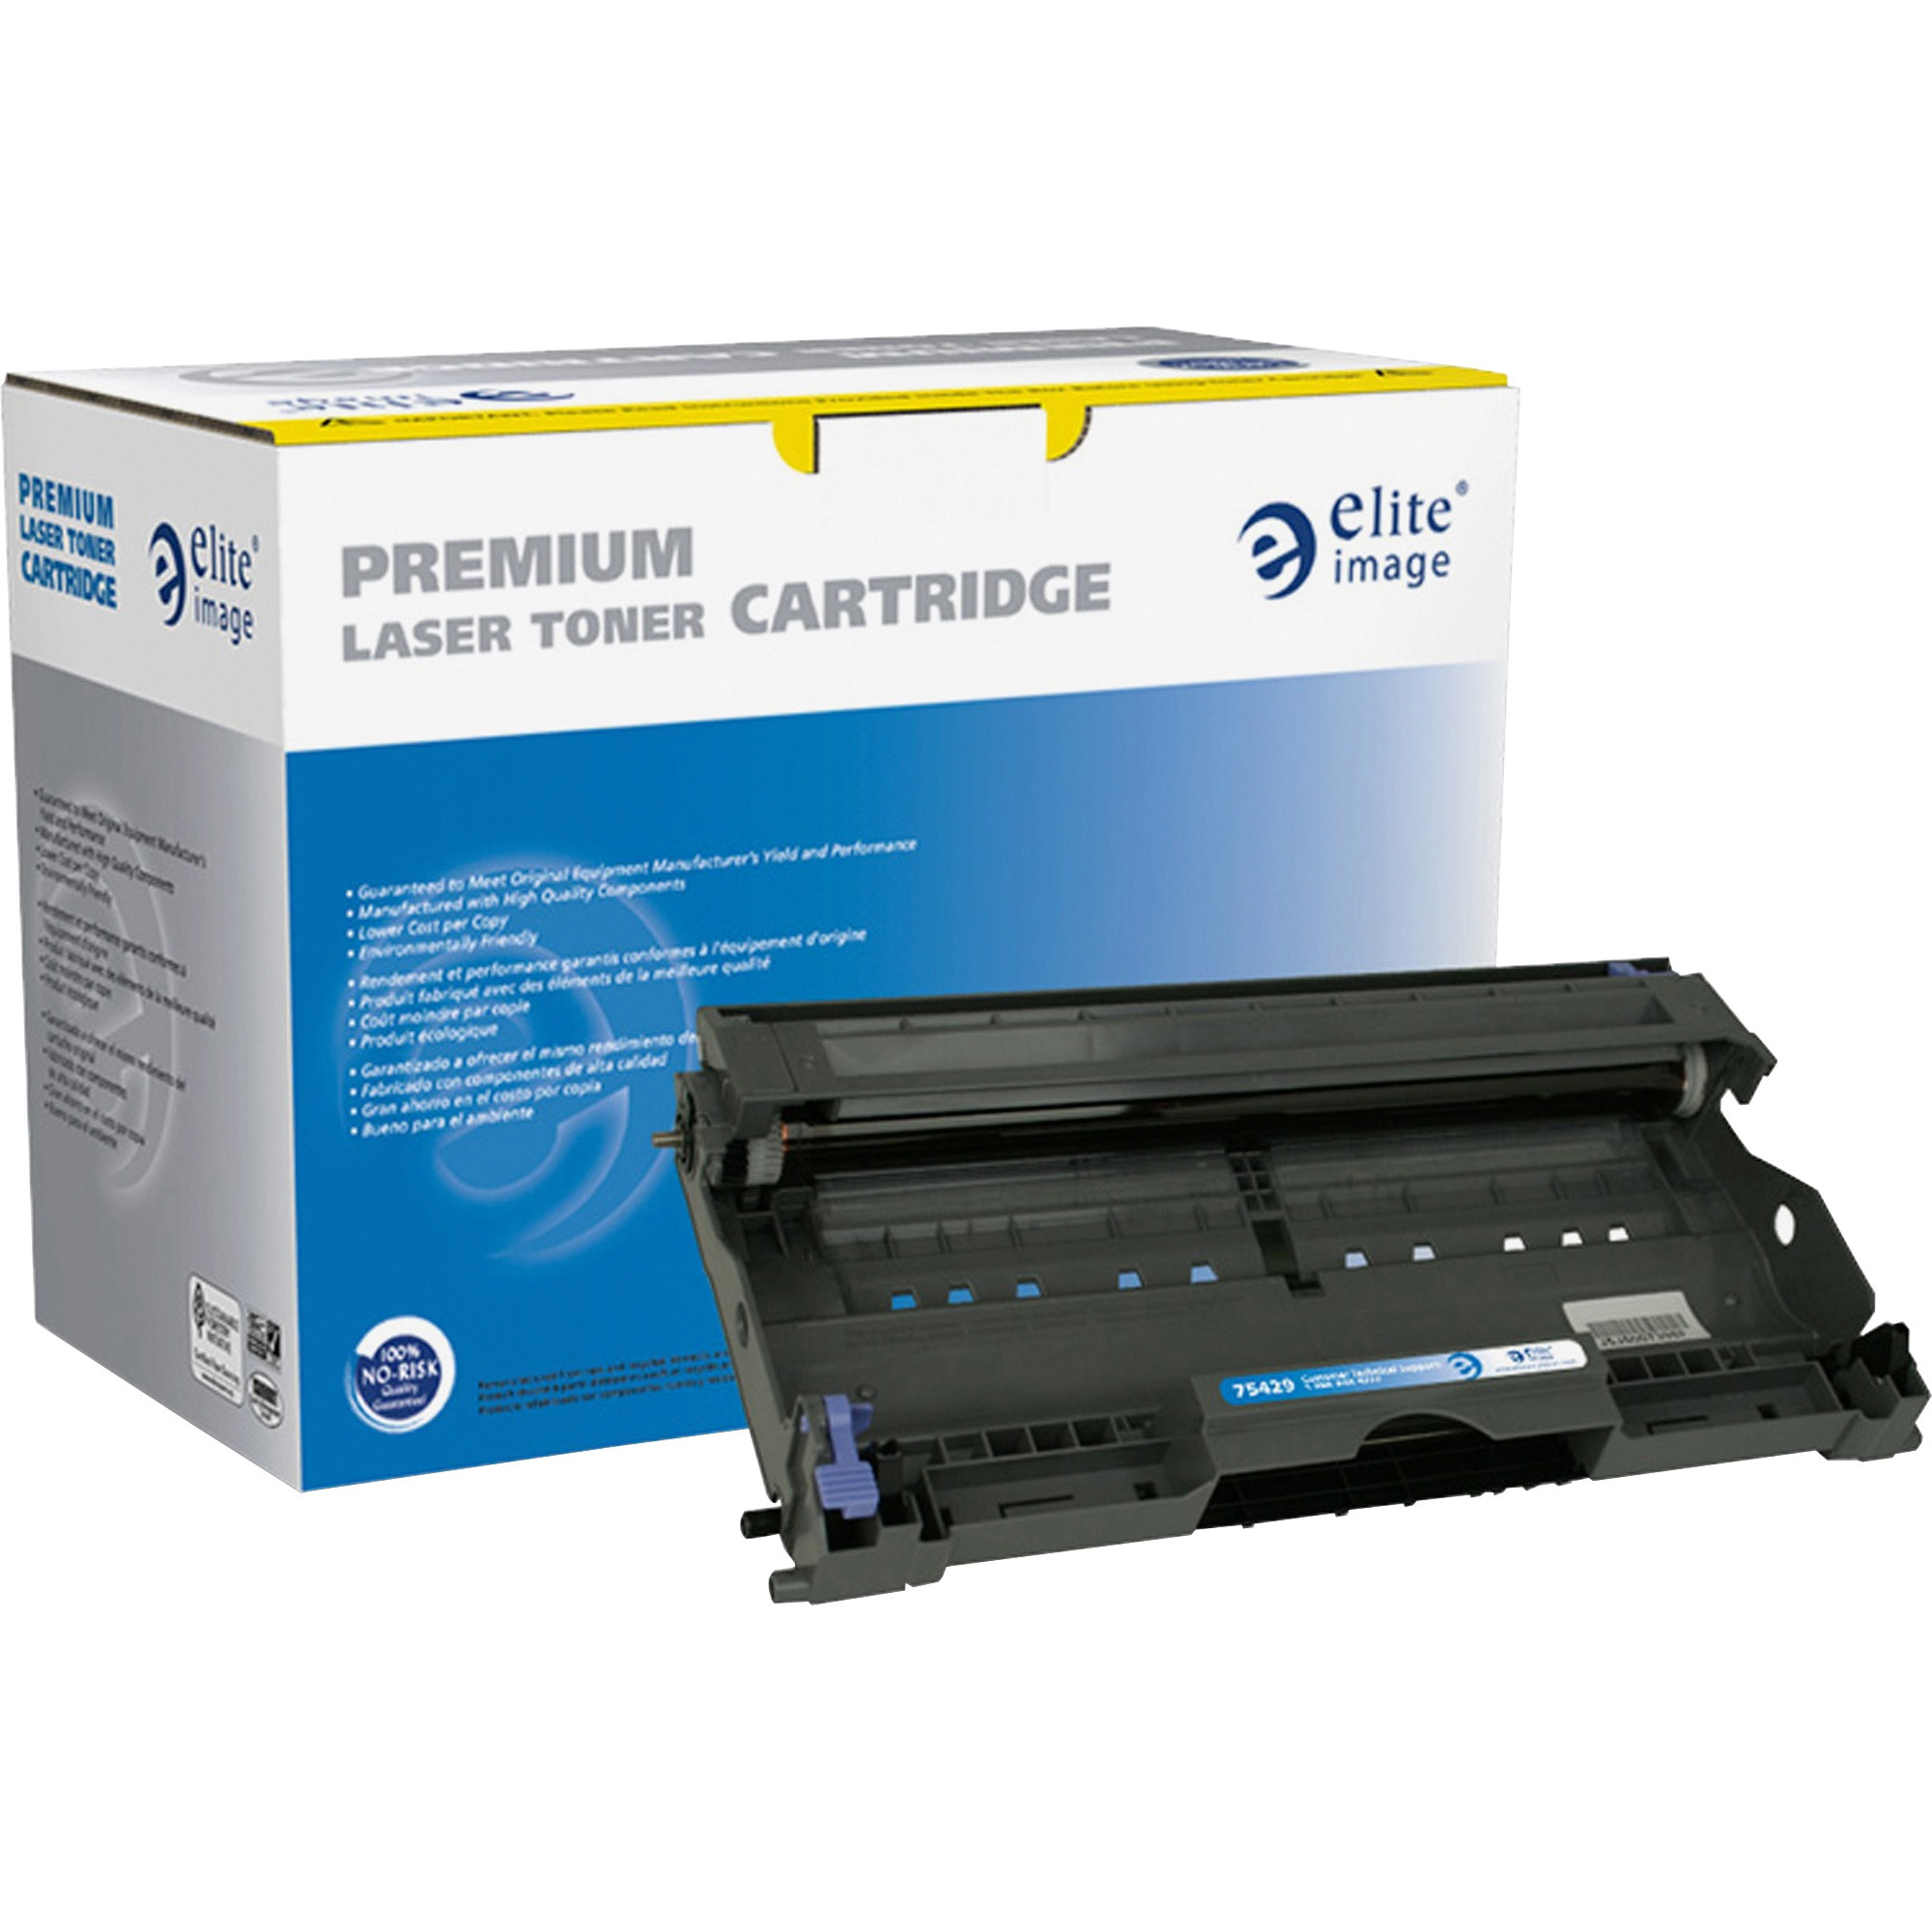 Elite Image Remanufactured Drum Cartridge Alternative For Brother DR520, 1 Each (Quantity)